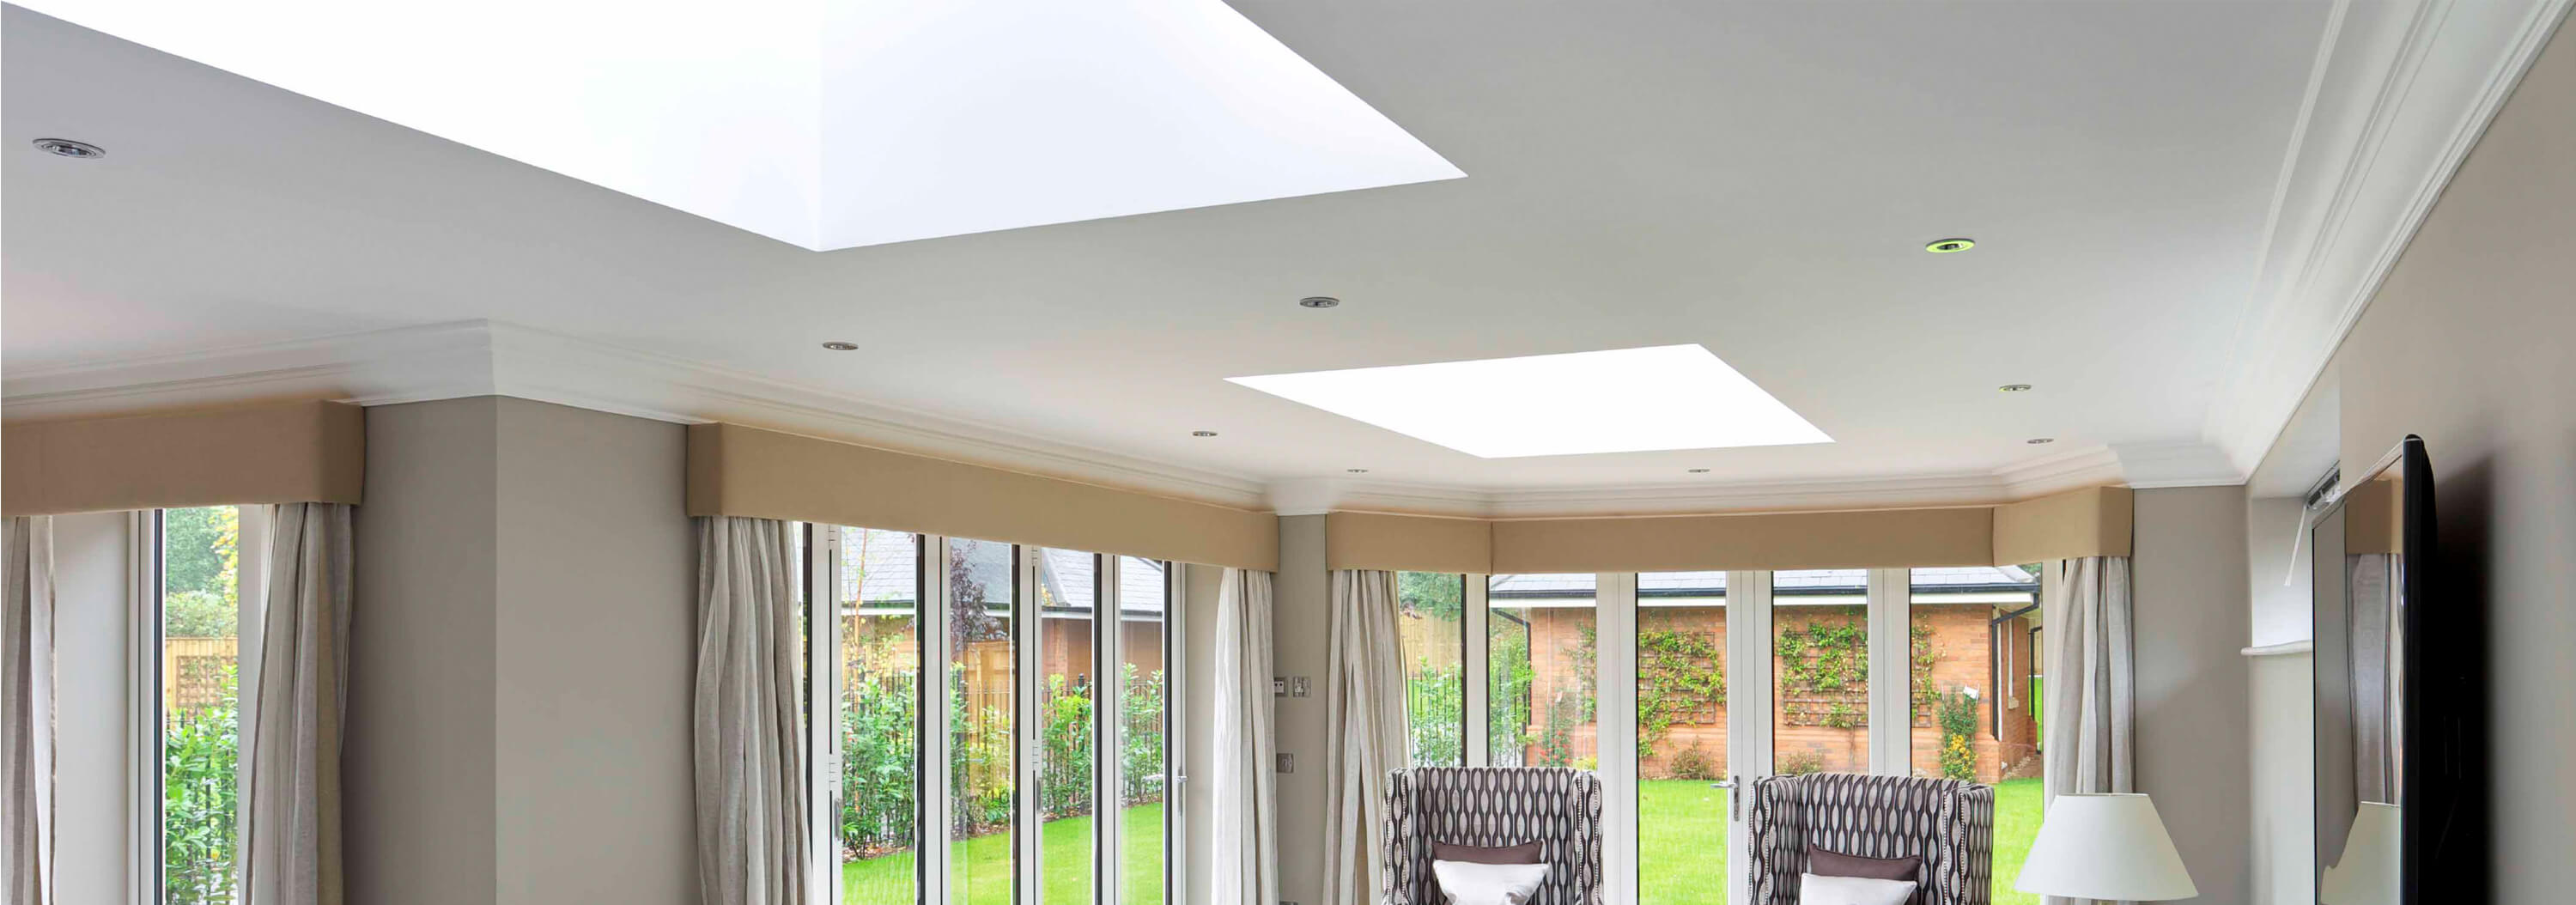 Contemporary Rooflights